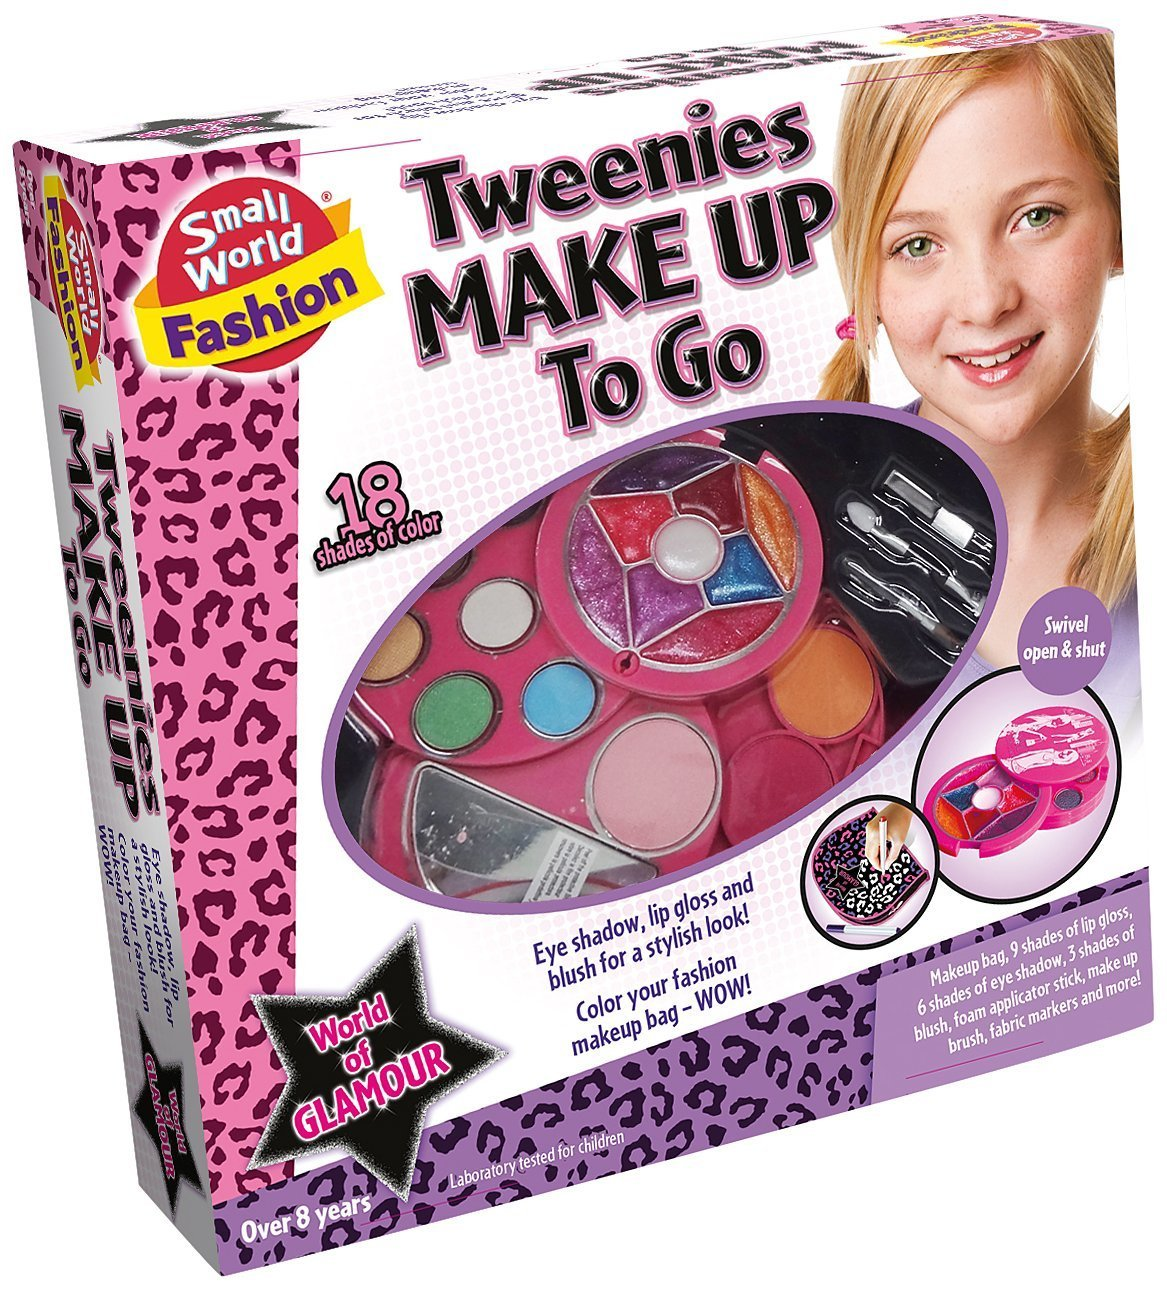 Small World Toys Fashion World of Glamour Children's Make Up Set for Tweens